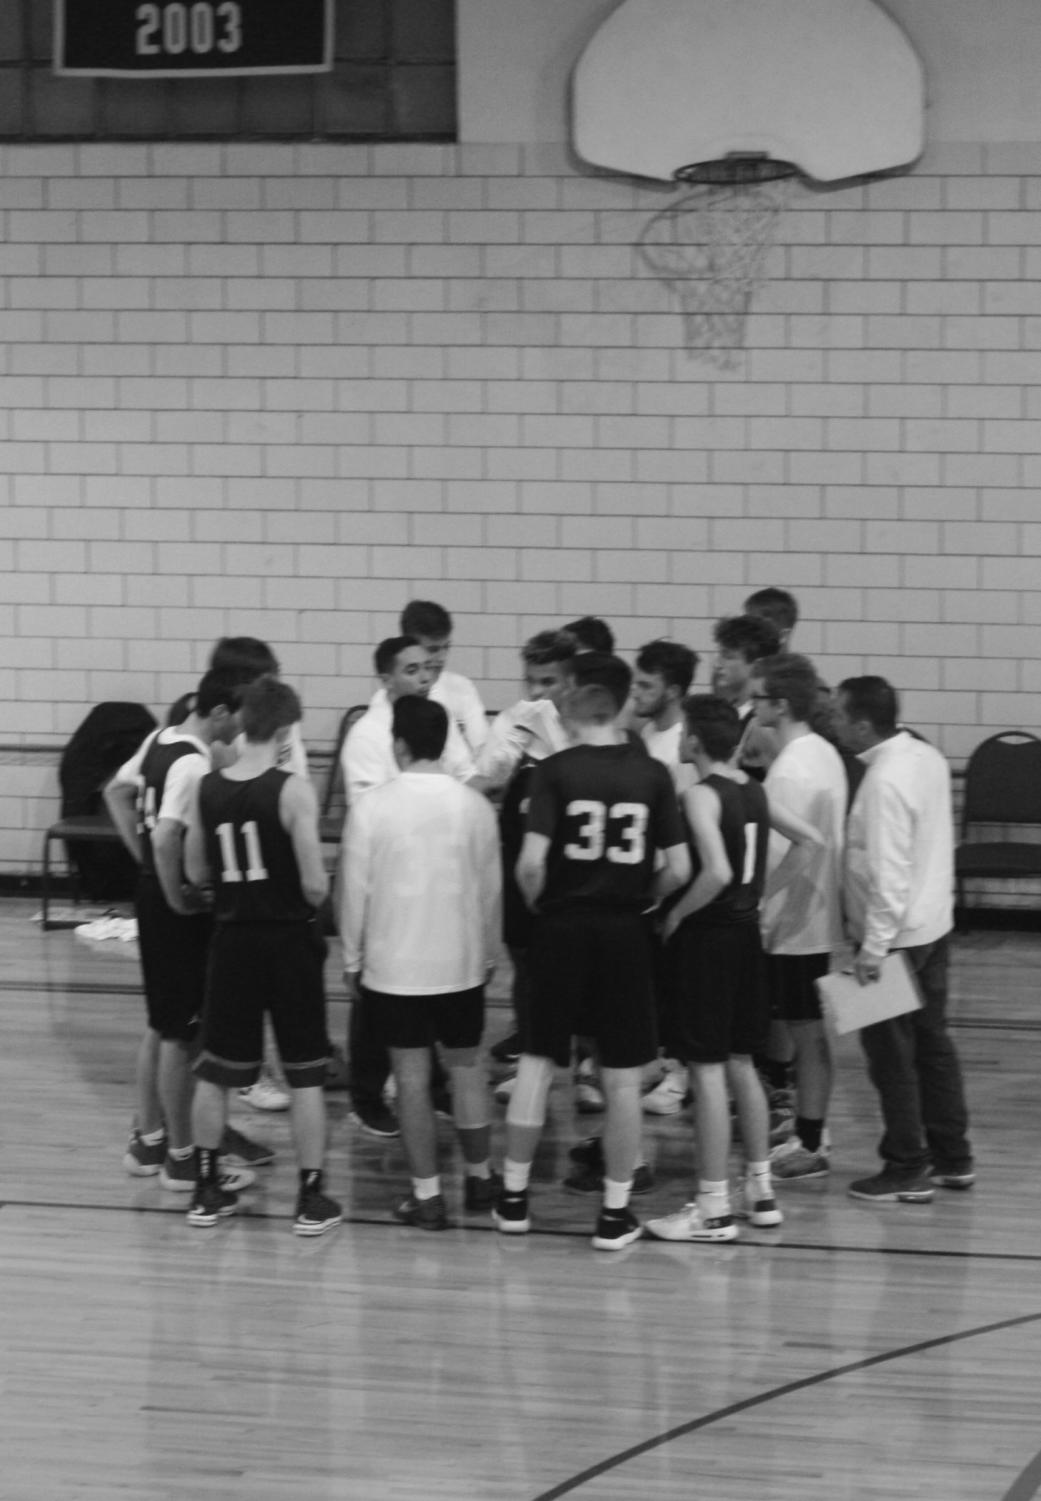 A league of their own: The St. Elizabeth team takes advice from Coach Gary Remlinger. Both the St. Elizabeth and St. Gabriel teams have students playing.